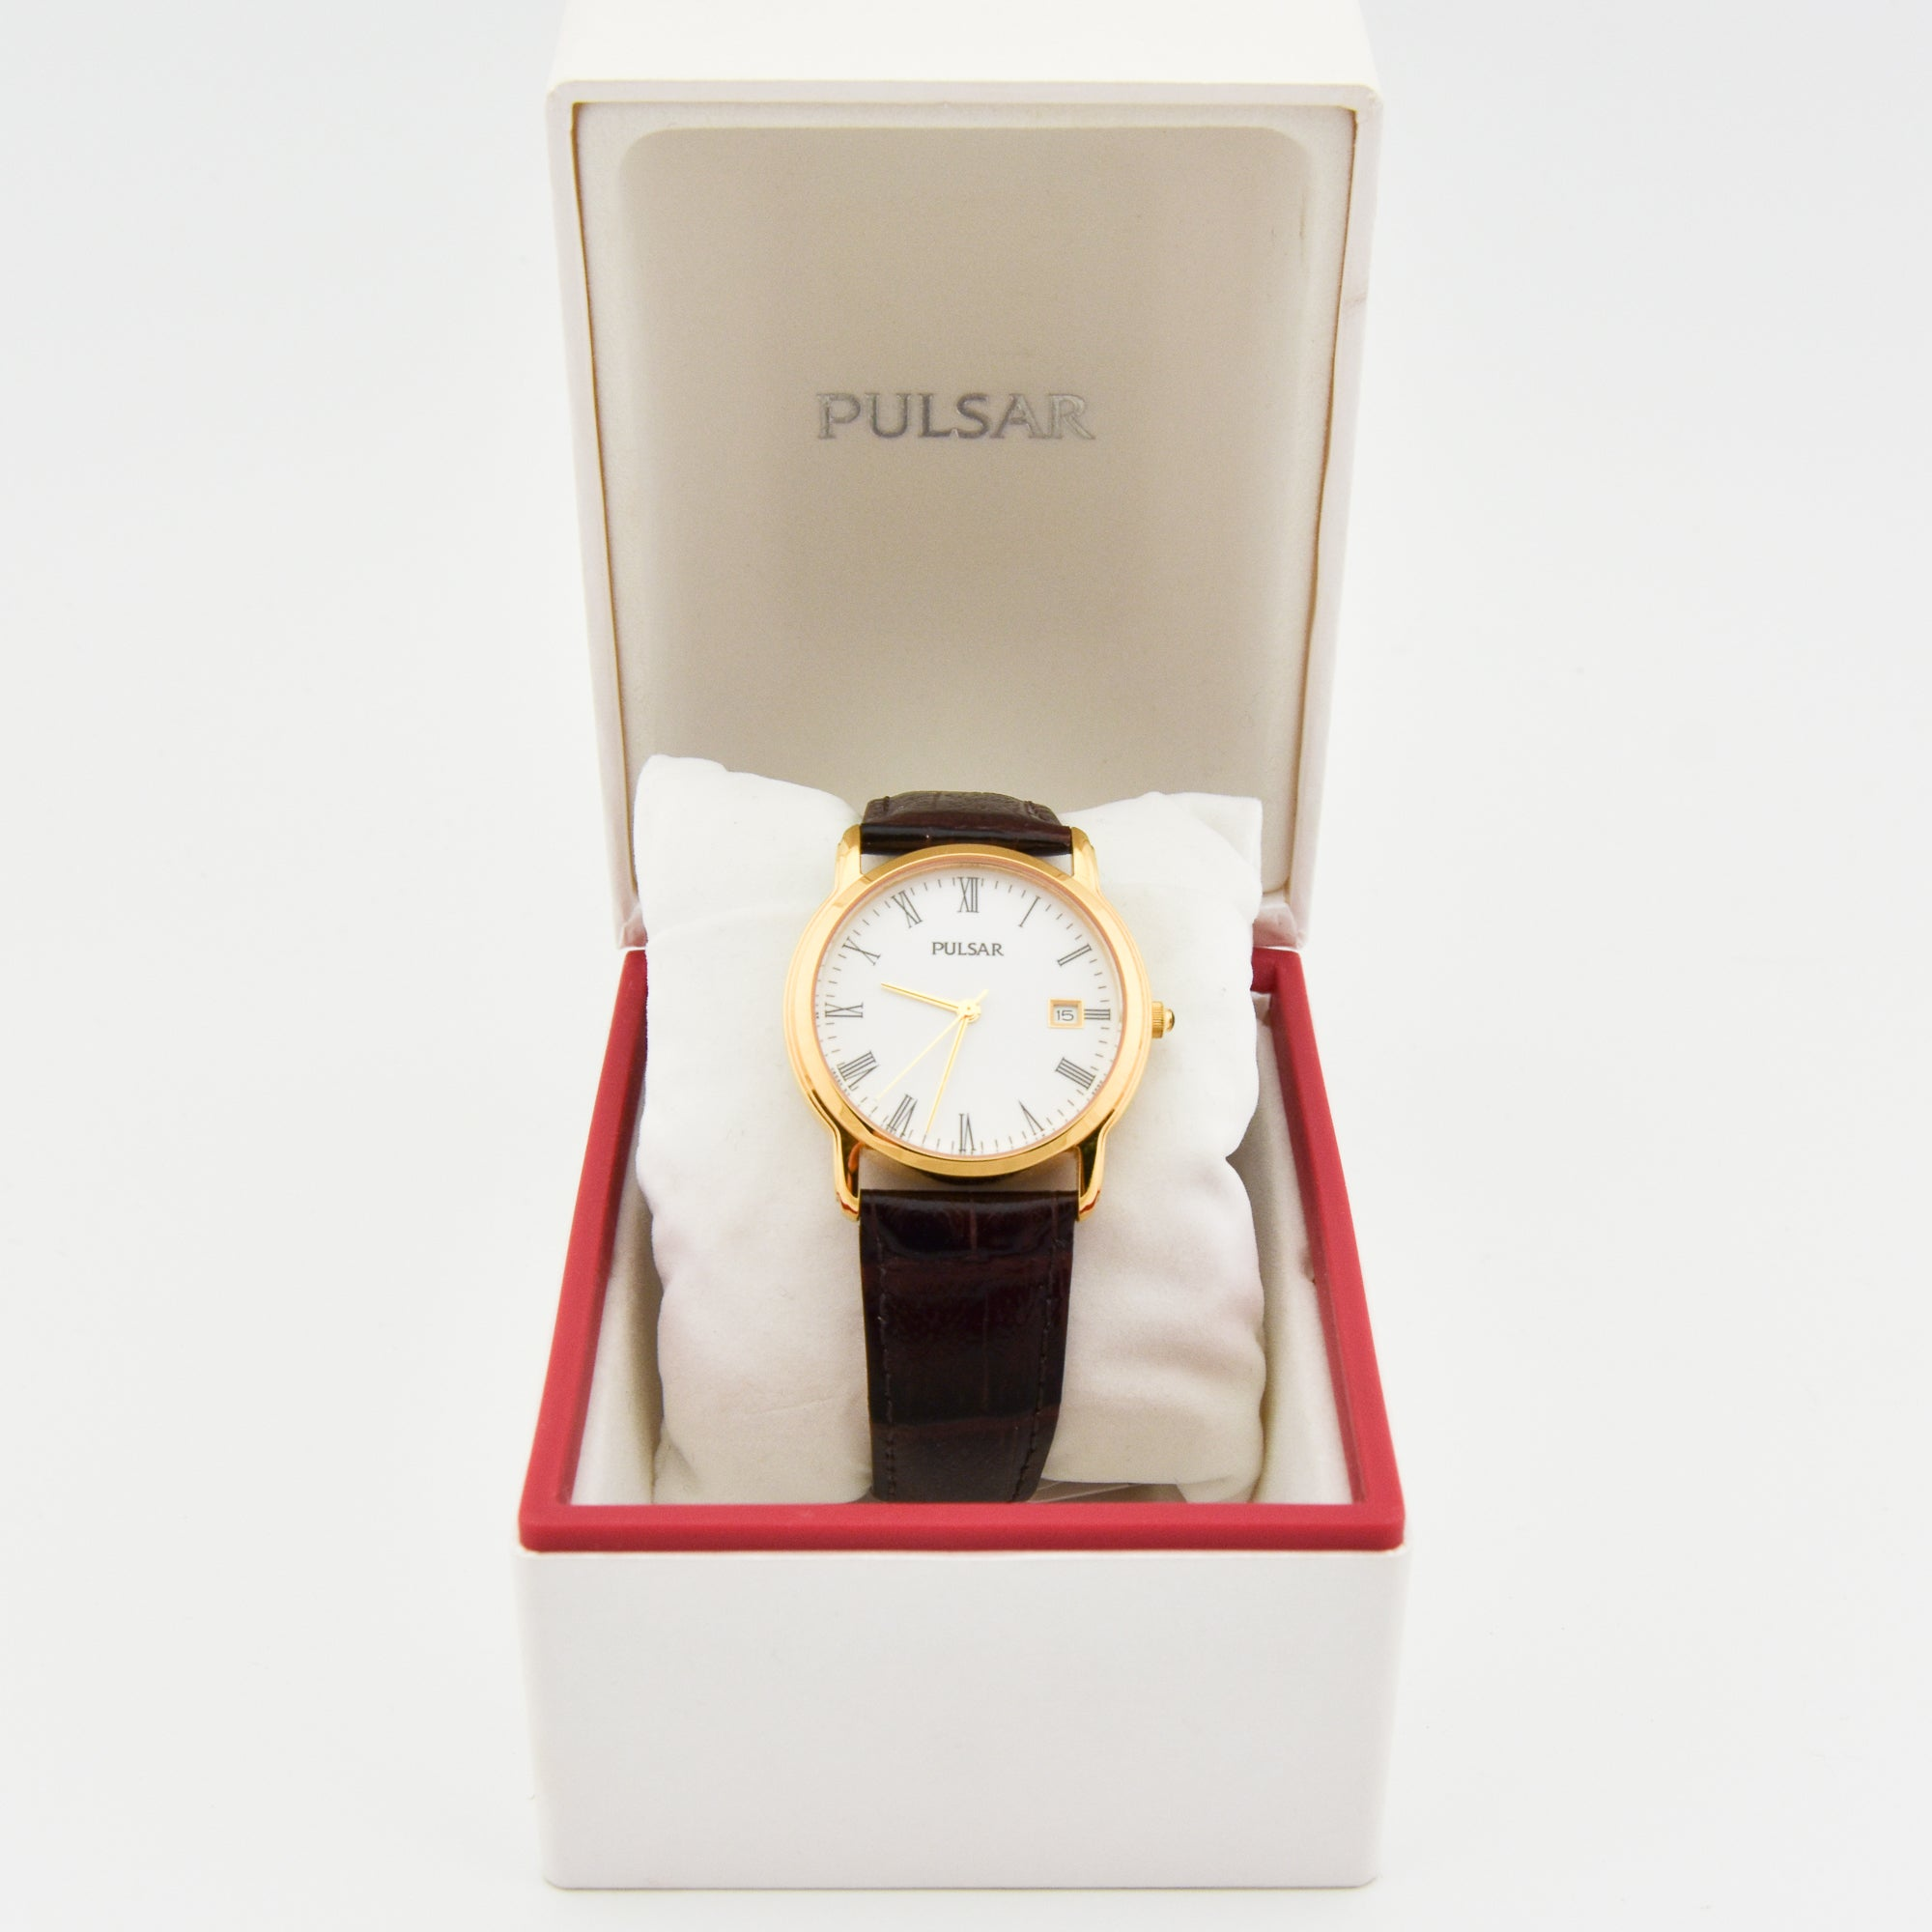 PULSAR QUARTZ NEW OLD STOCK WRIST WATCH WITH DATE